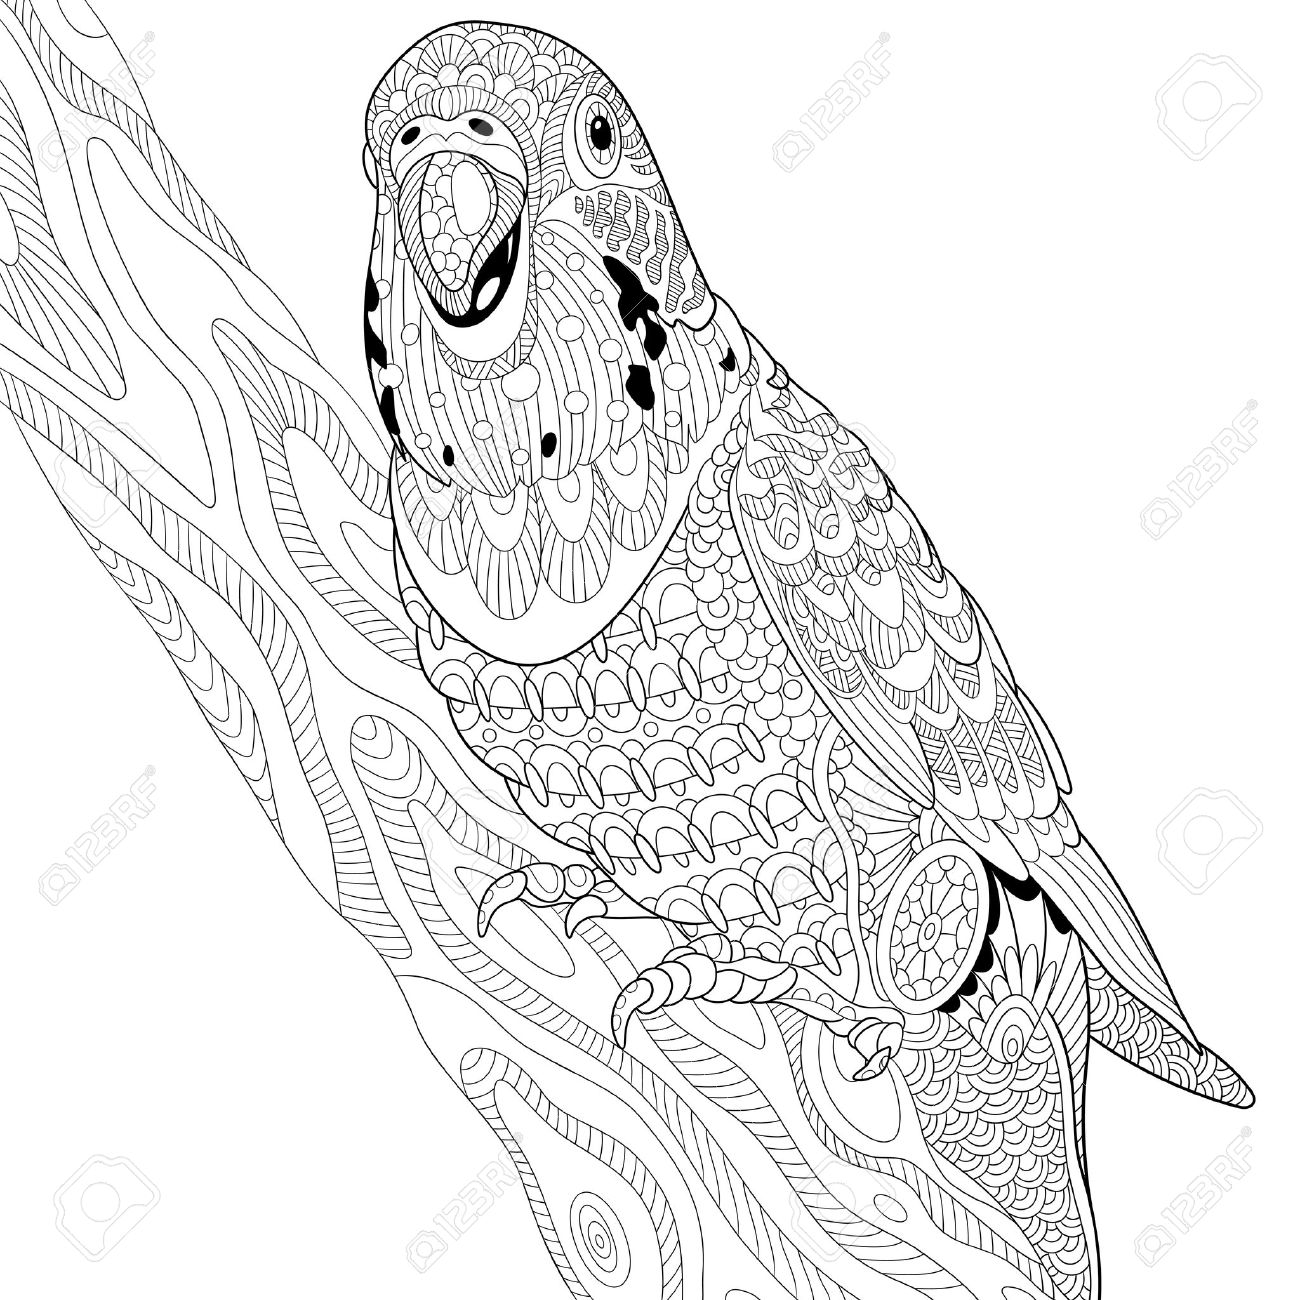 1300x1300 Stylized Cartoon Budgie Parrot Sitting On Tree Branch Royalty Free